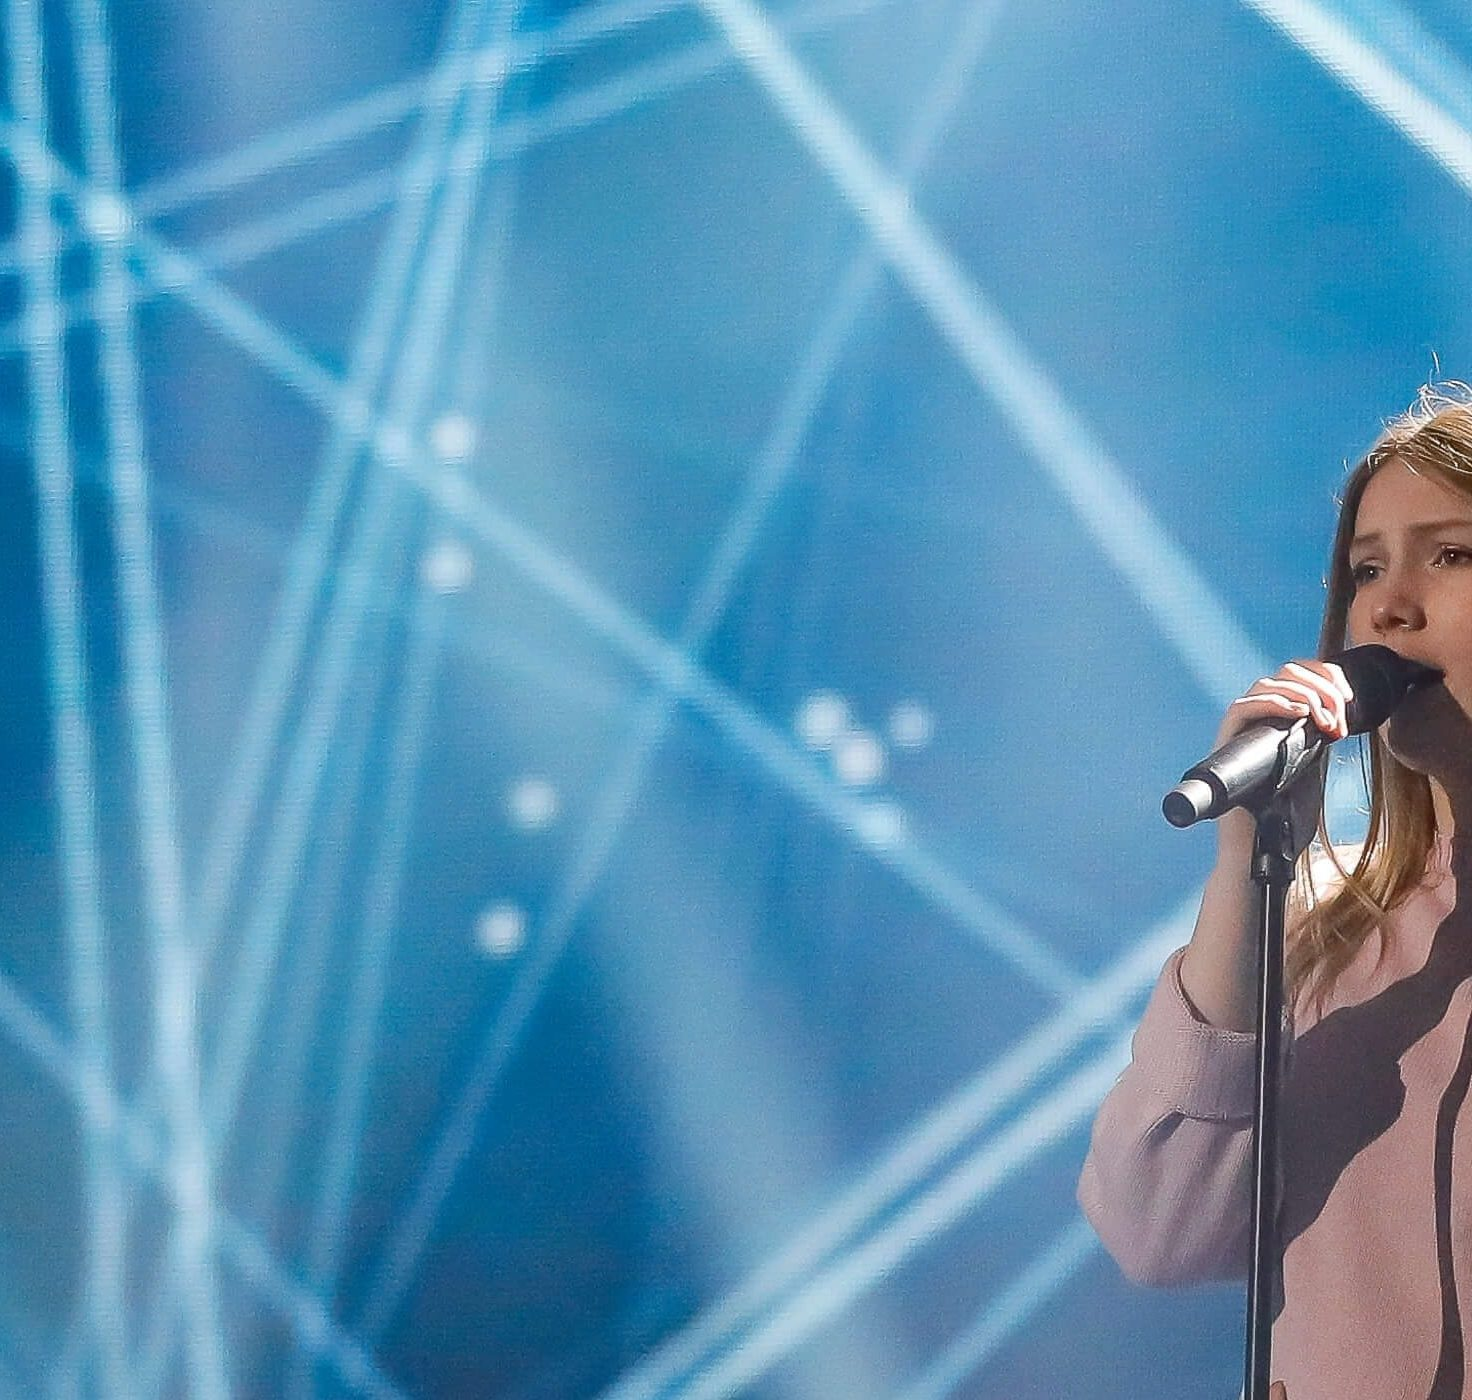 Image: Andres Putting/ Thomas Hanses (EBU)   The 62nd Eurovision Song Contest in Kyiv, Ukraine.